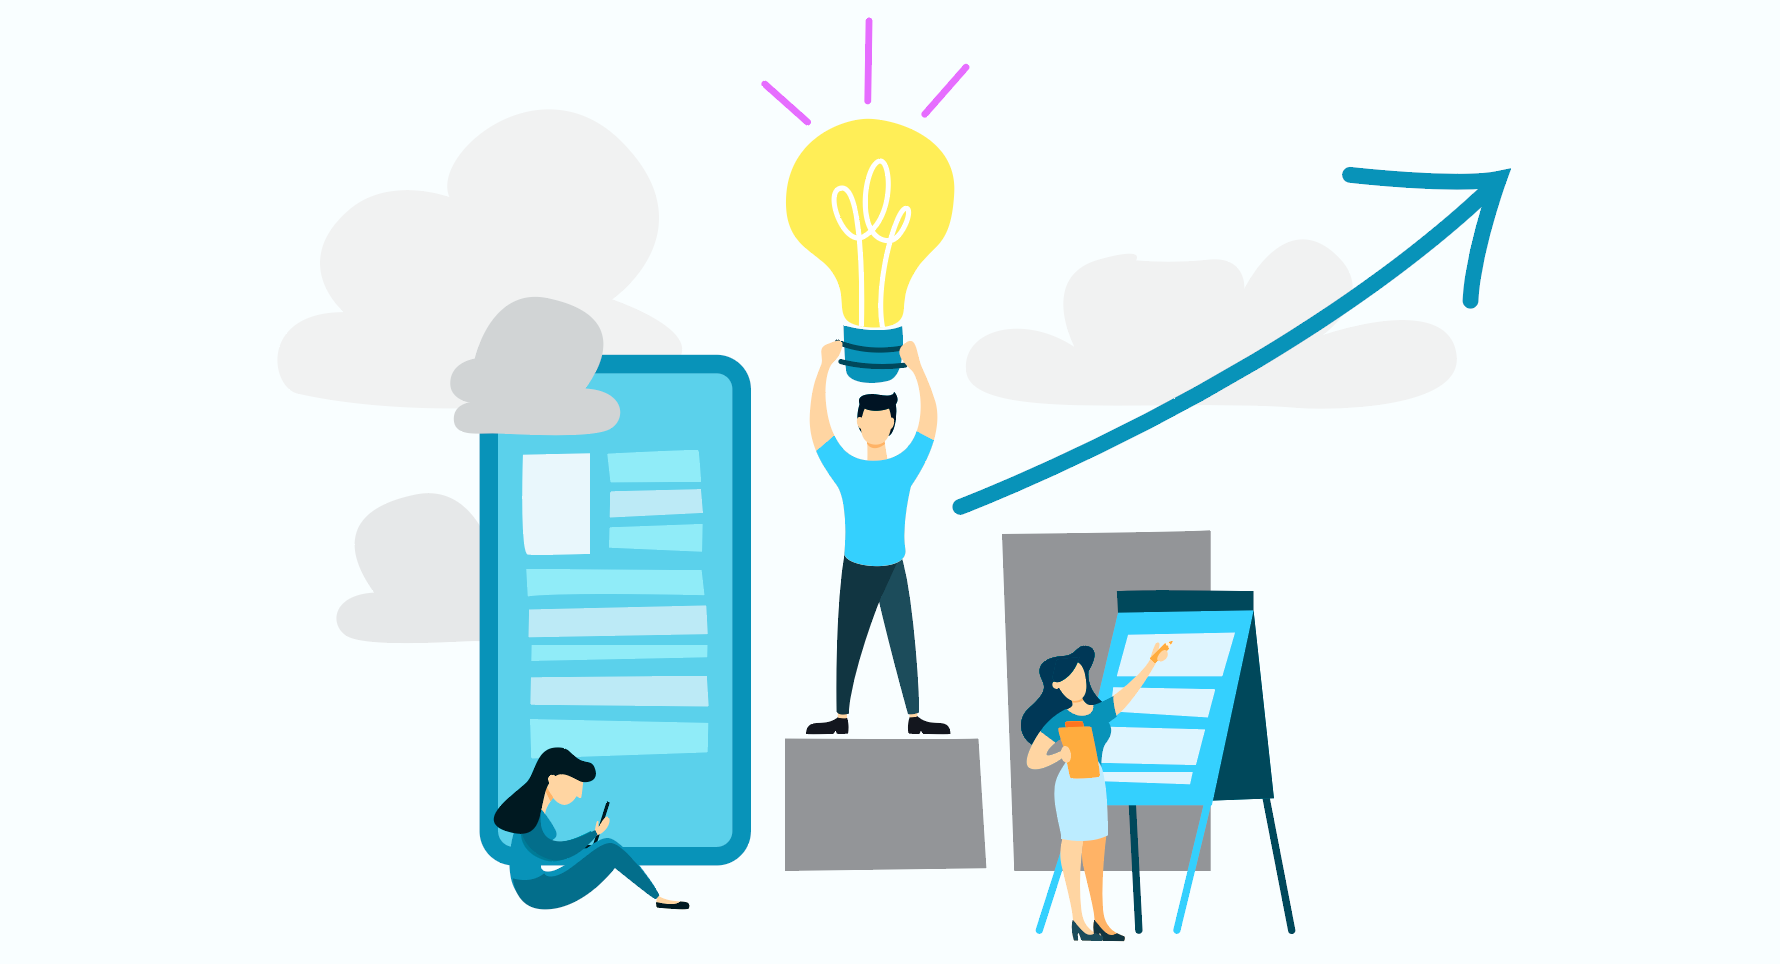 3 Sales Acceleration Tips to Help Your Team Hit Quota